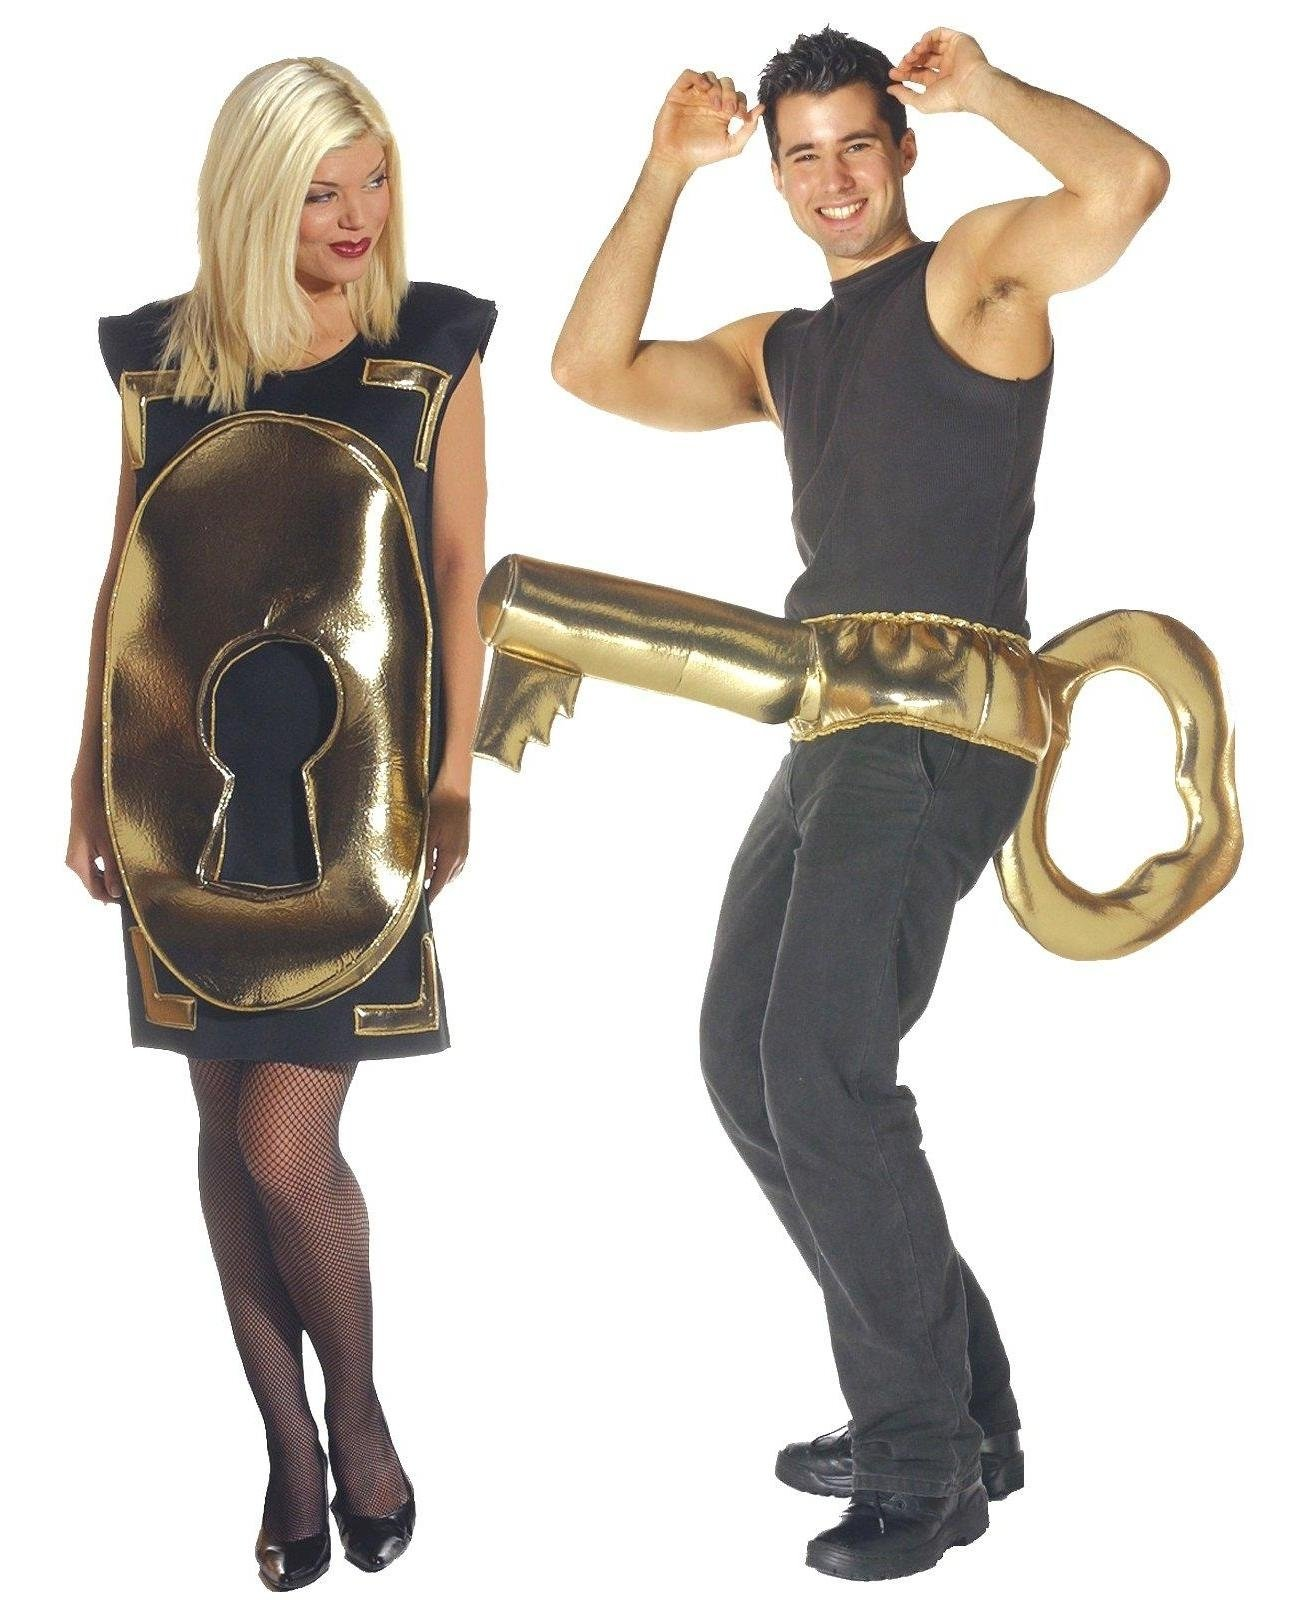 10 Stylish Halloween Costume Ideas For Couples couples halloween costume ideas costumes cosplay apparel for 1 2020